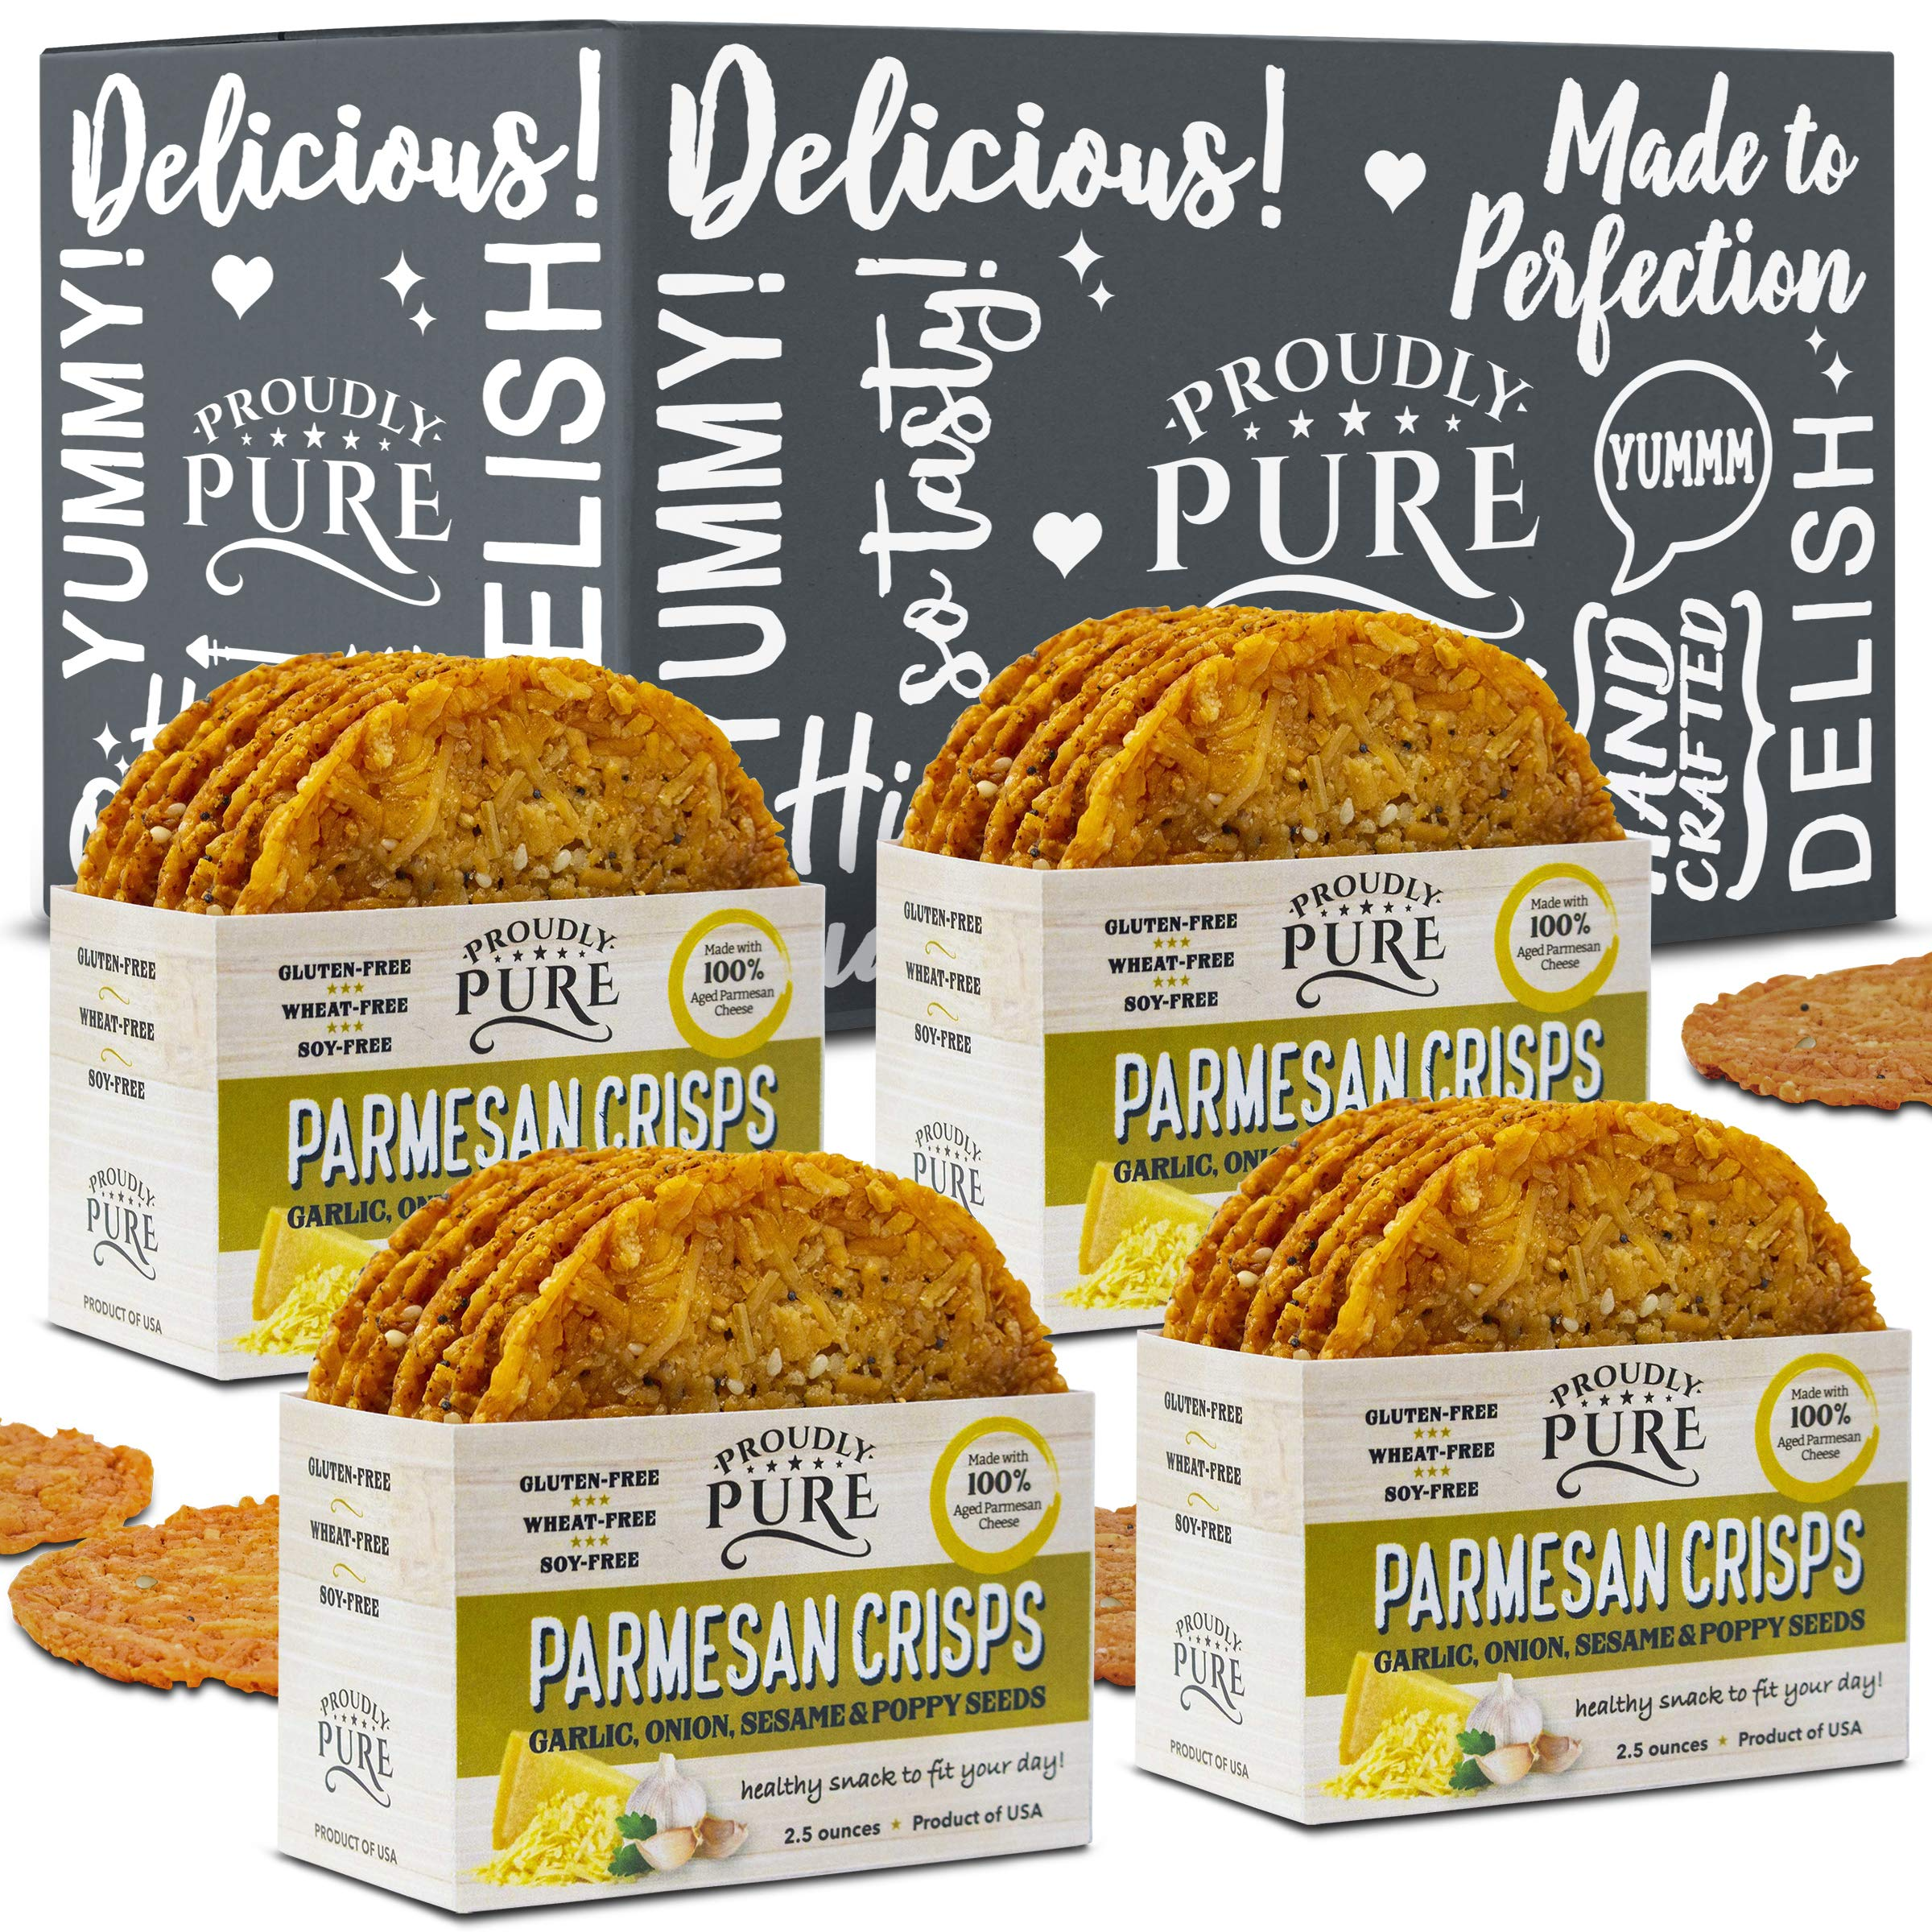 Proudly Pure Parmesan Cheese Crisps - Keto Snacks Zero Carb Crunchy Delicious Healthy 100% Natural Aged Cheesy Parm Chips Wheat, Soy & Gluten Free Keto Crackers Low Carb Snack | Onion/Poppy/Garlic 4PK by PROUDLY PURE